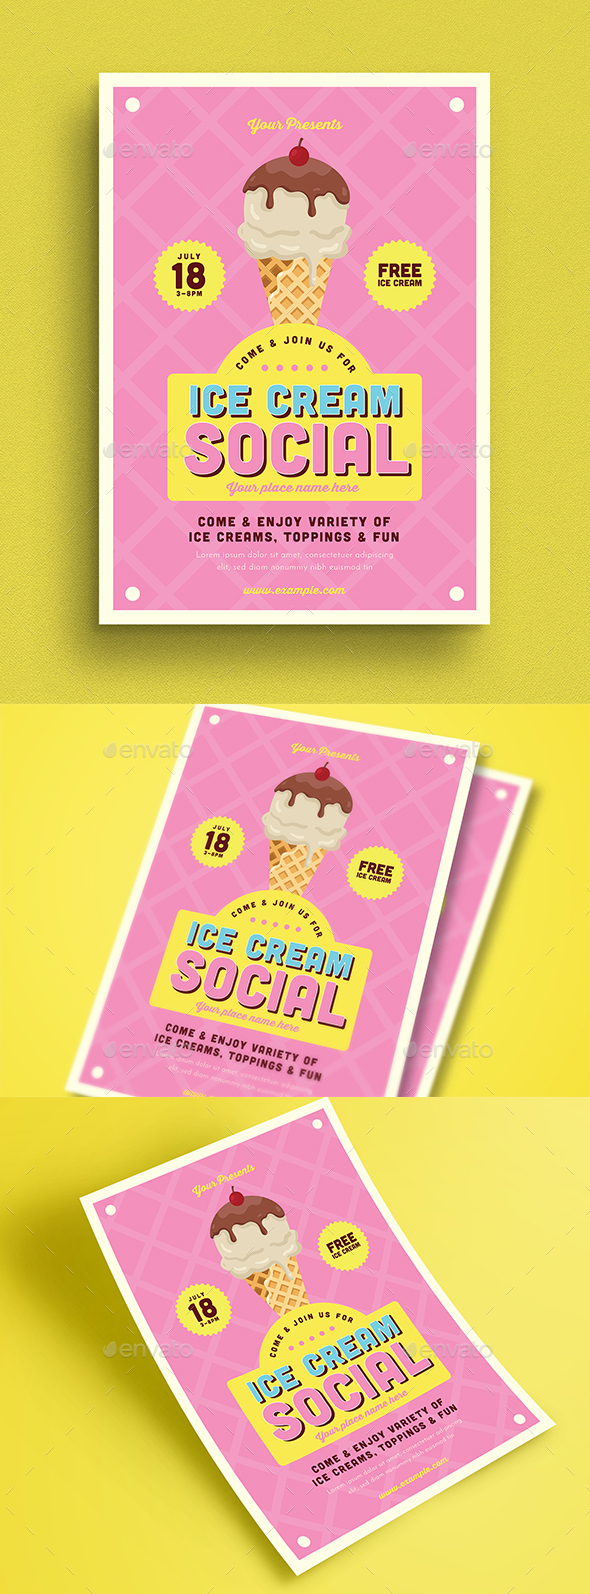 Ice Cream Social Flyer - Events Flyers